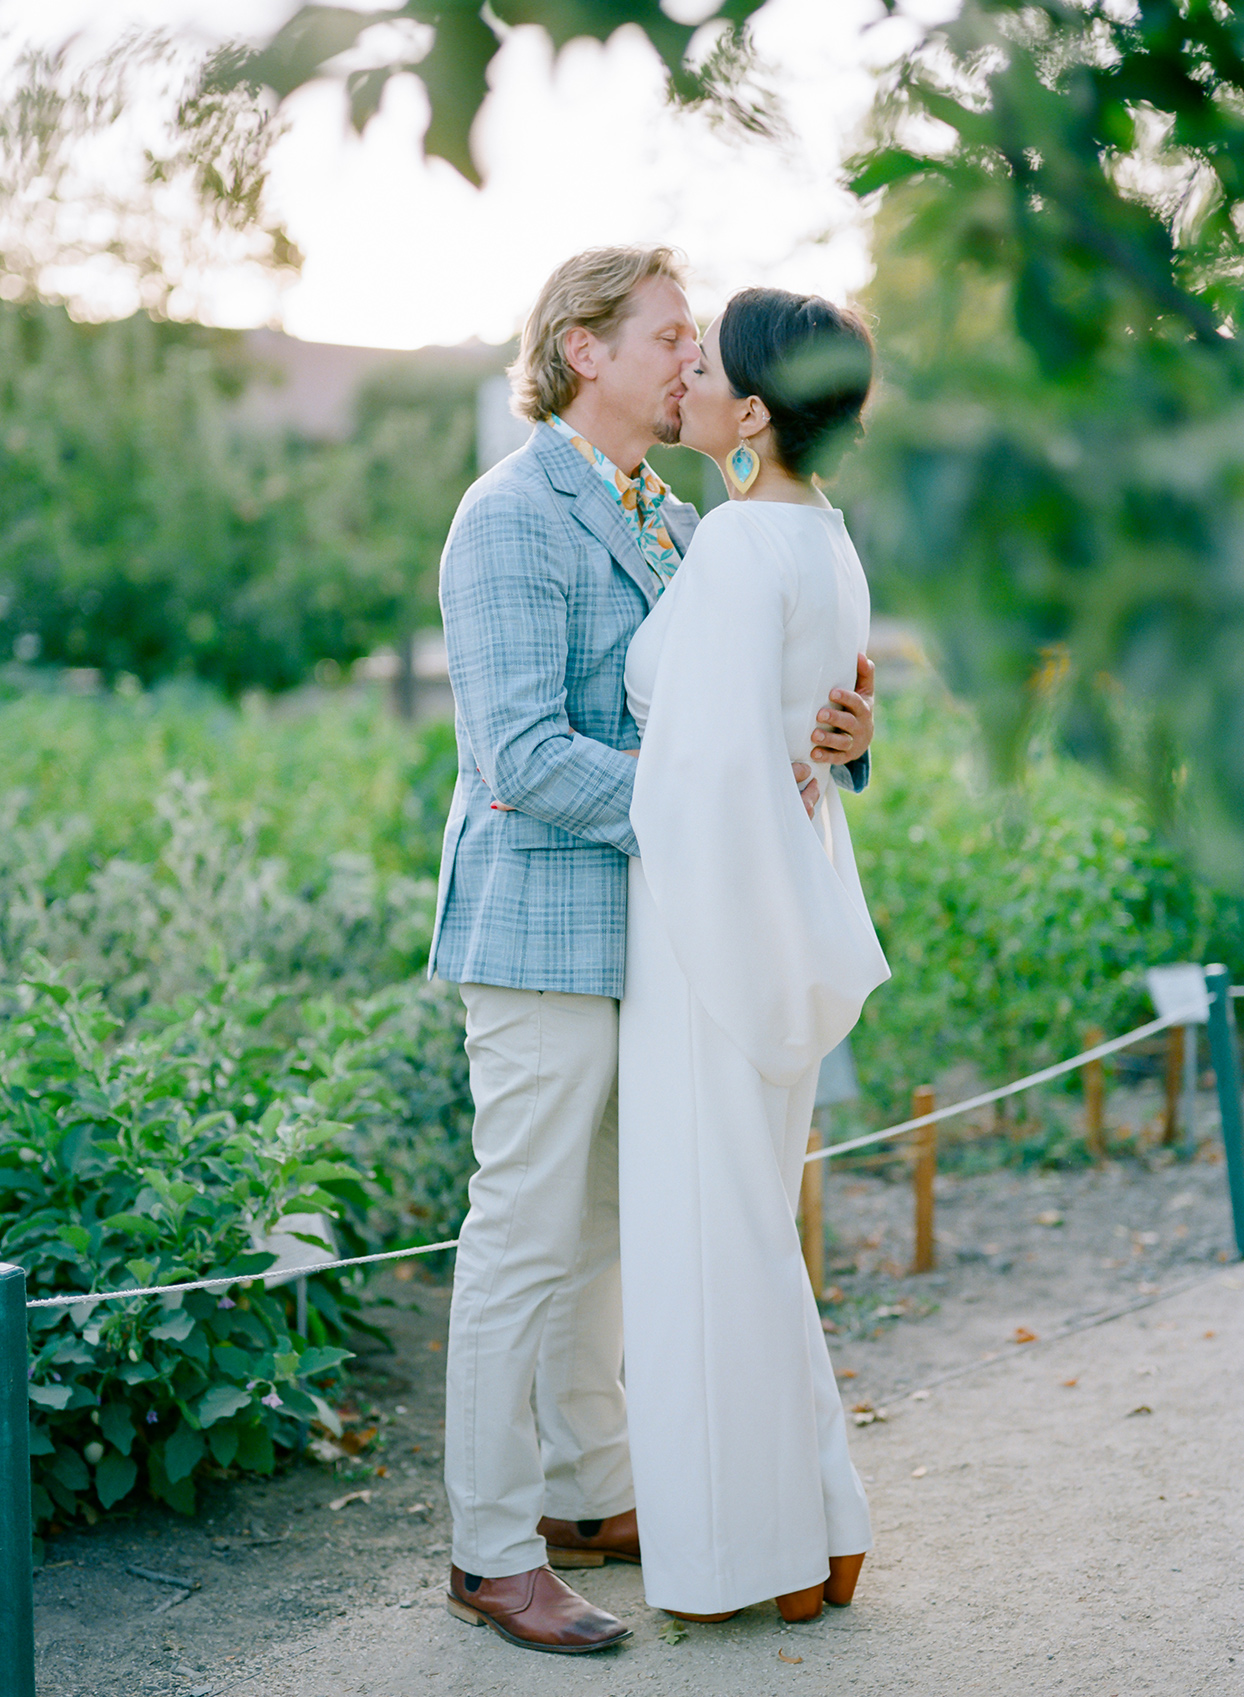 couple kissing in casual attire by garden